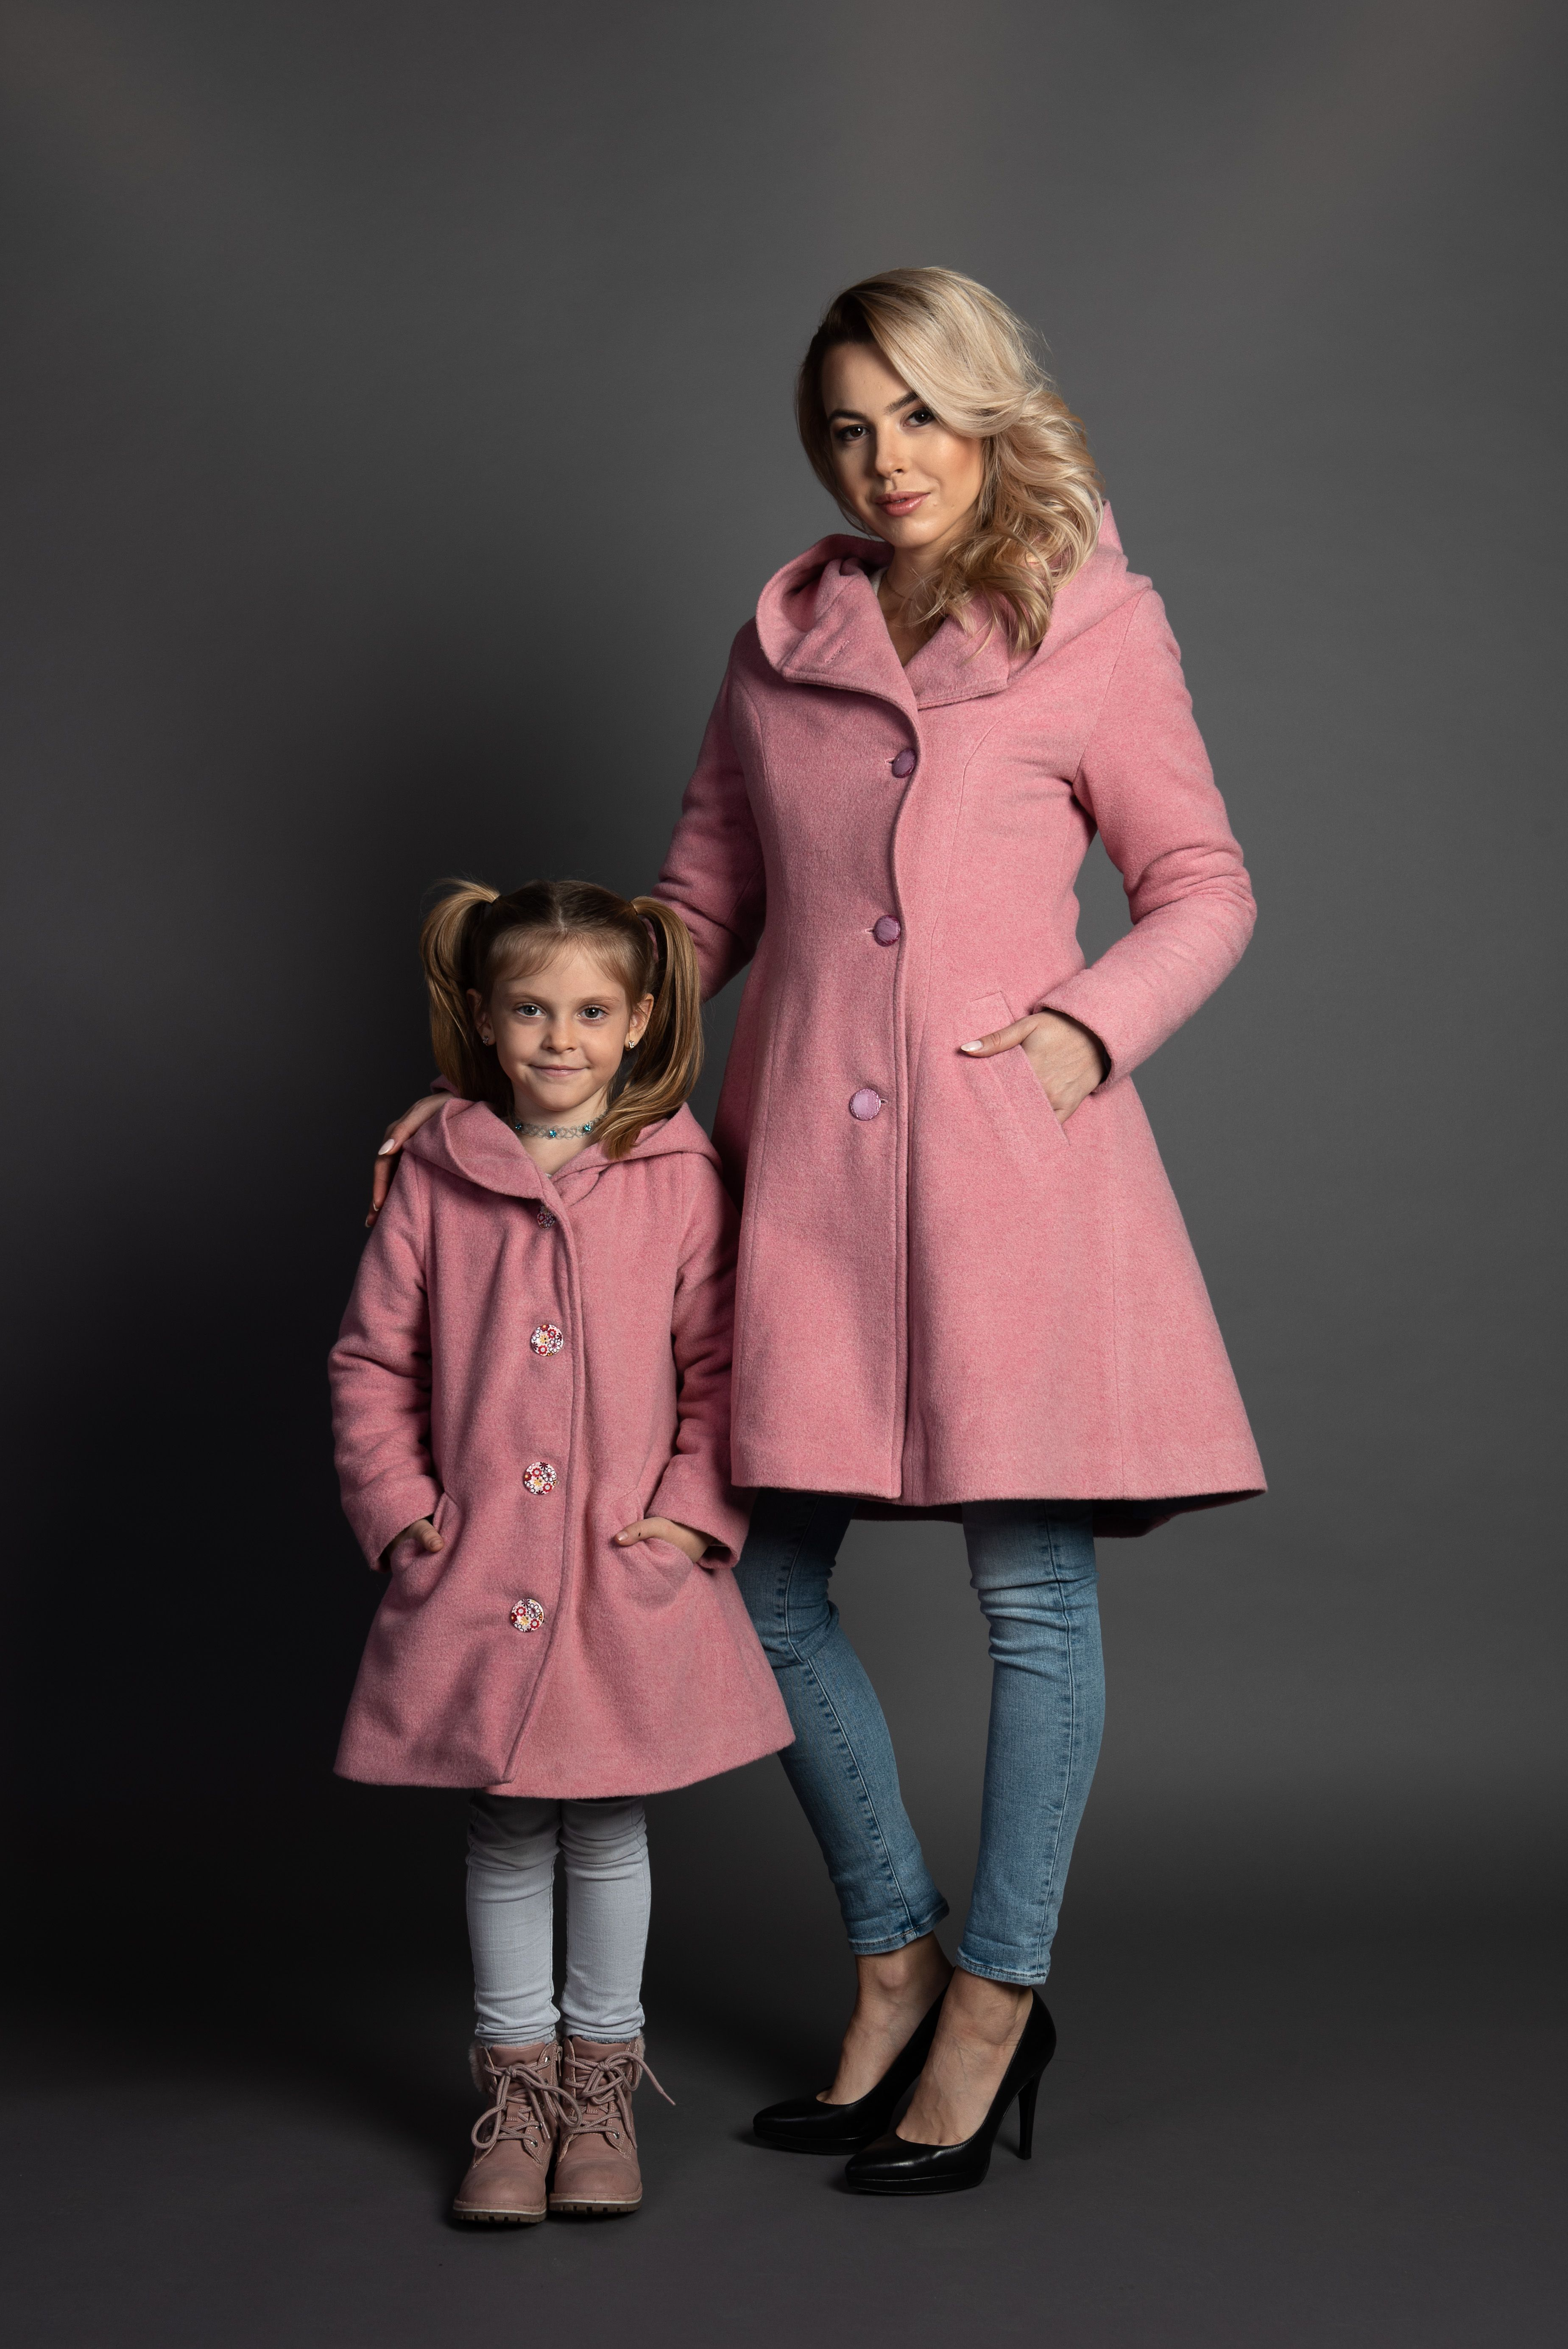 Mother And Daughter Cute Pink Matching Coats Girls Winter Coats Wool Winter Coat Winter Coats Women [ 5540 x 3698 Pixel ]